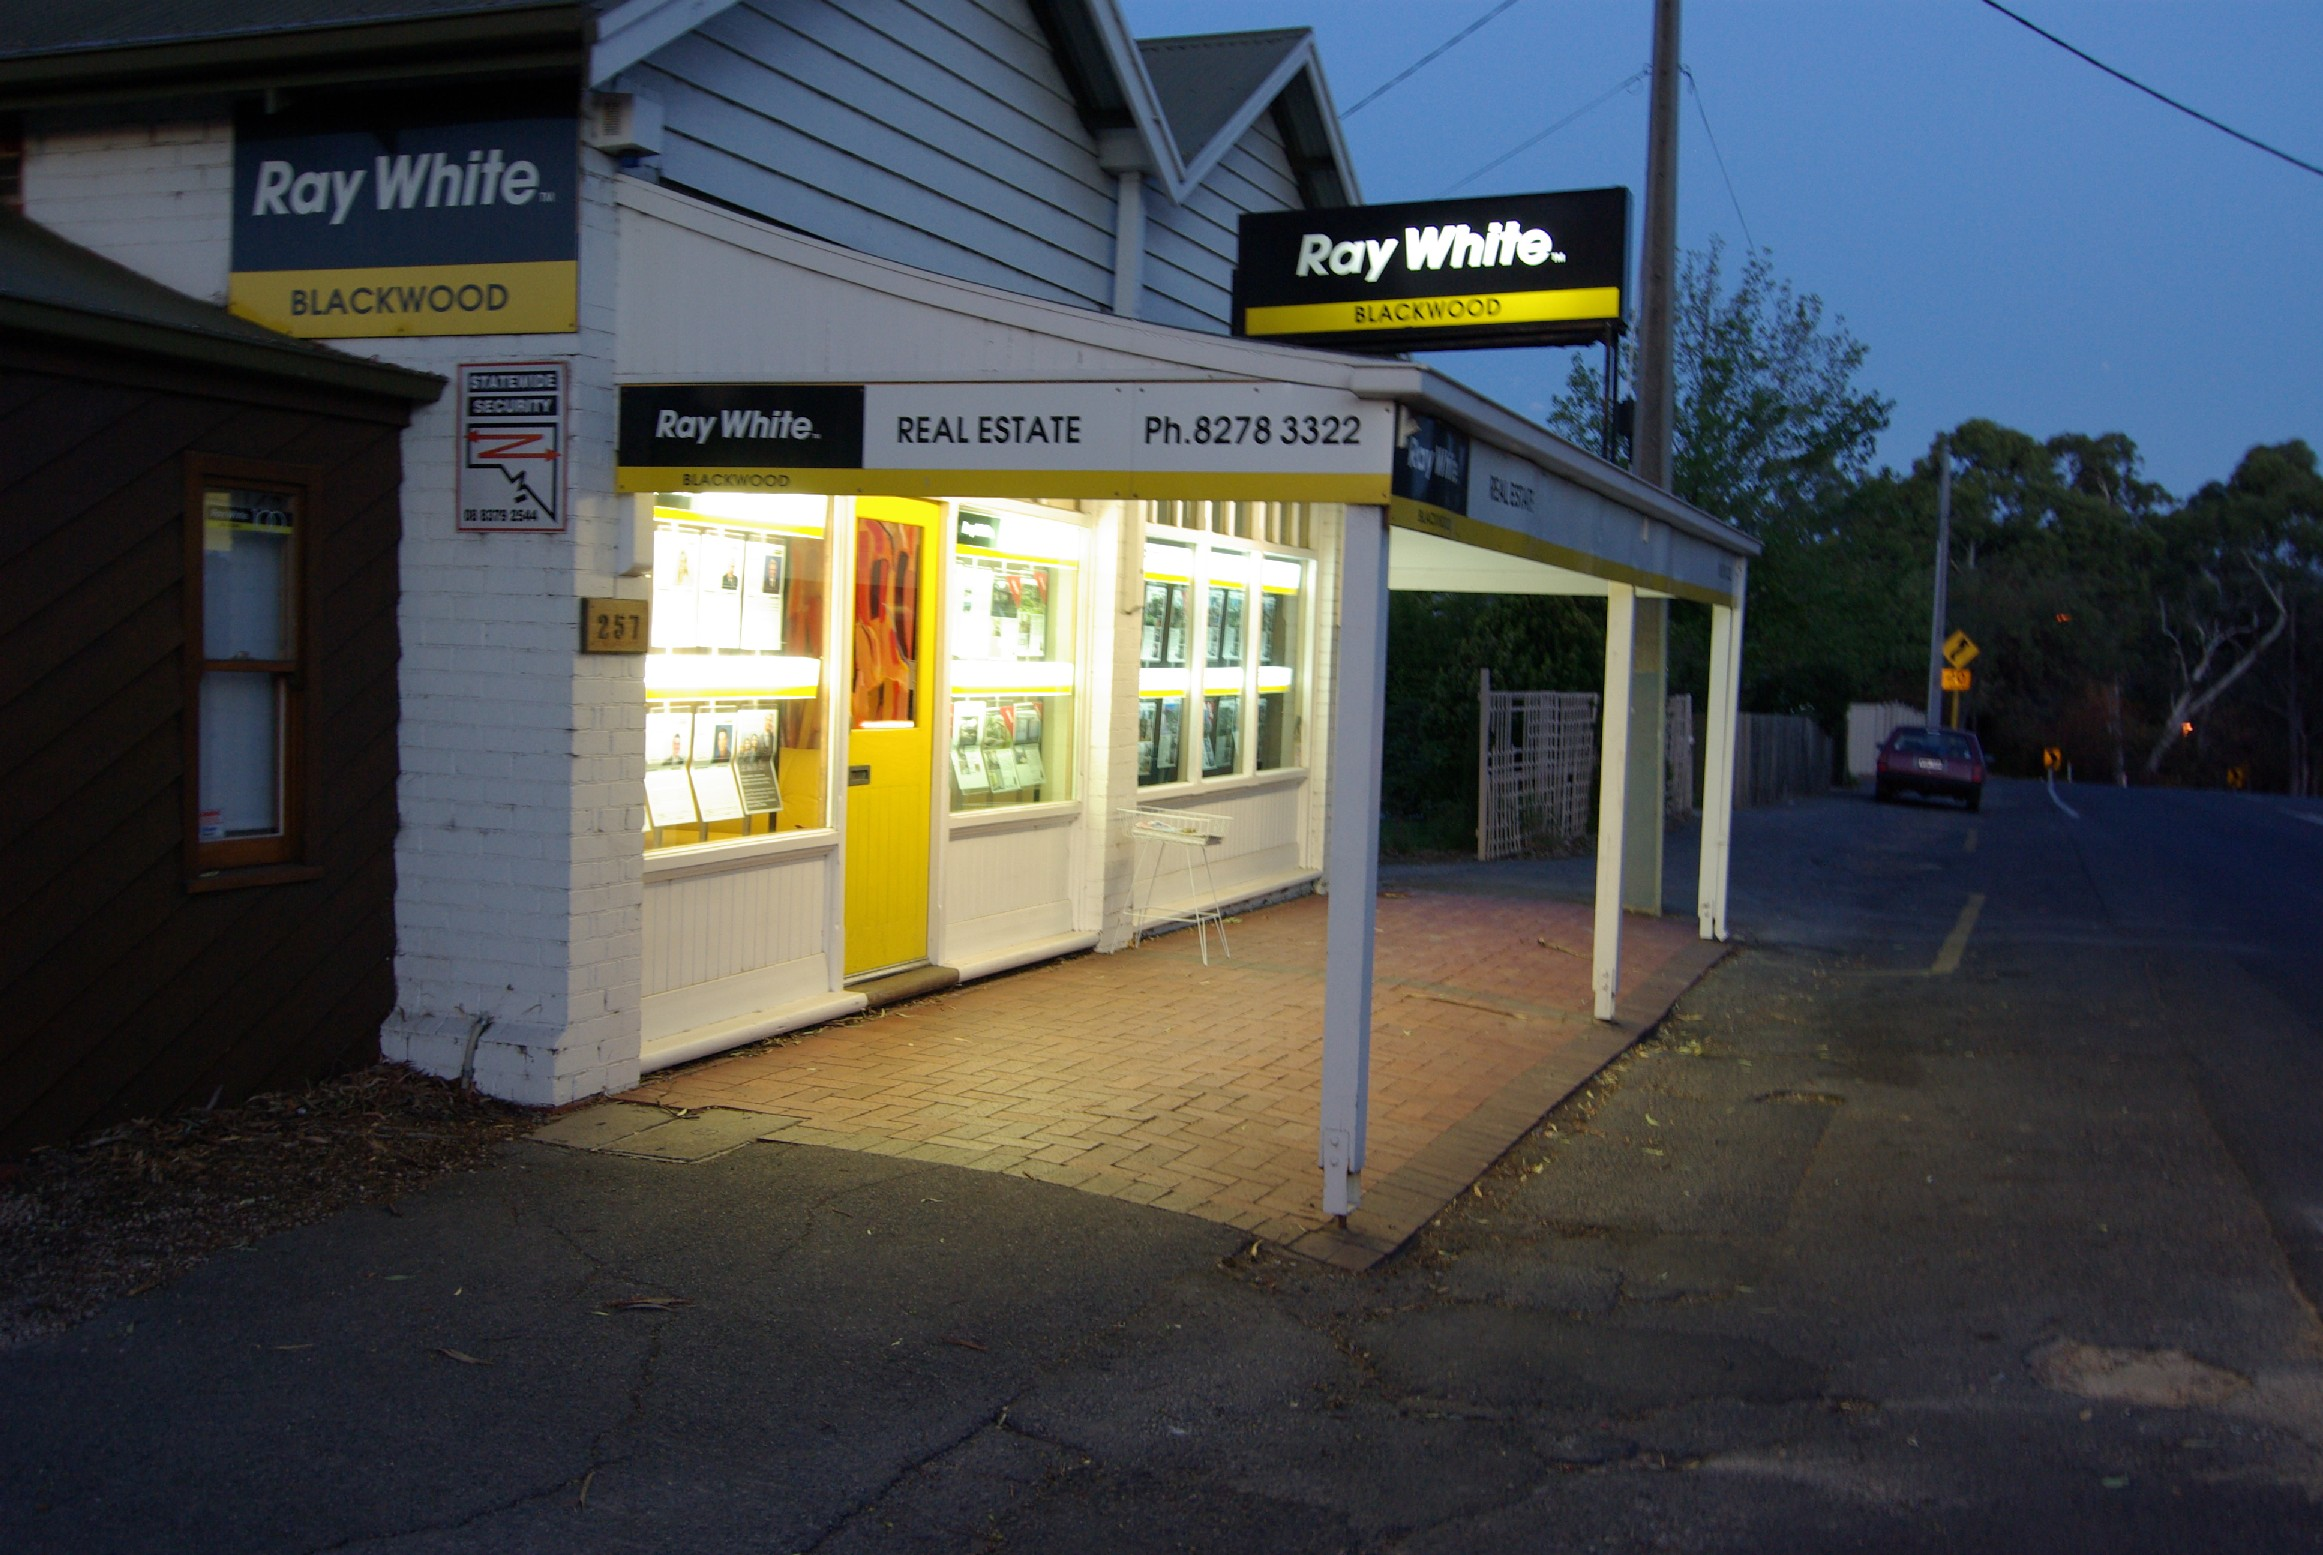 Ray White Real Estate Blackwood Office